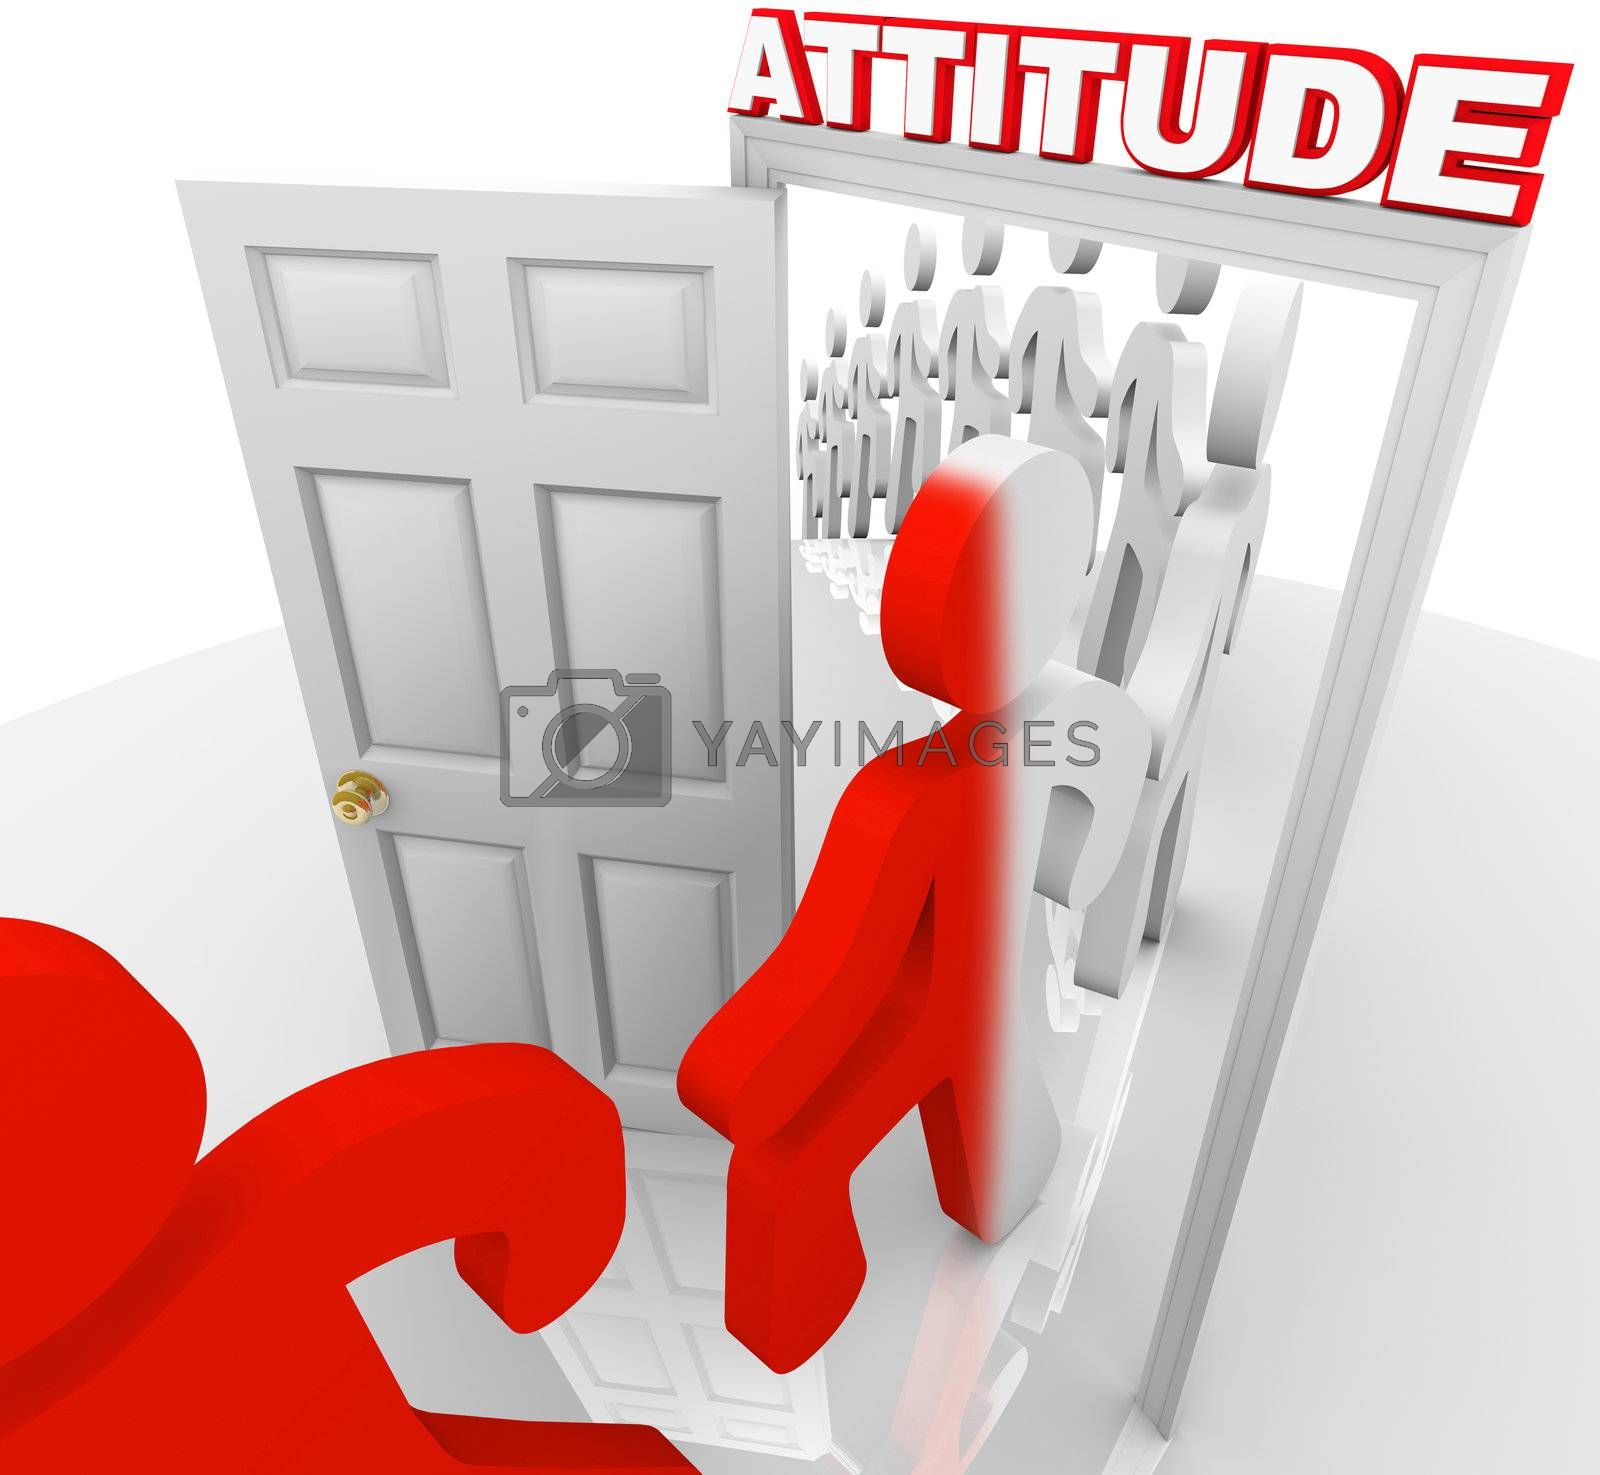 A line of people step through a doorway marked Attitude and are transformed and ready for success by embracing positivity and other good qualities